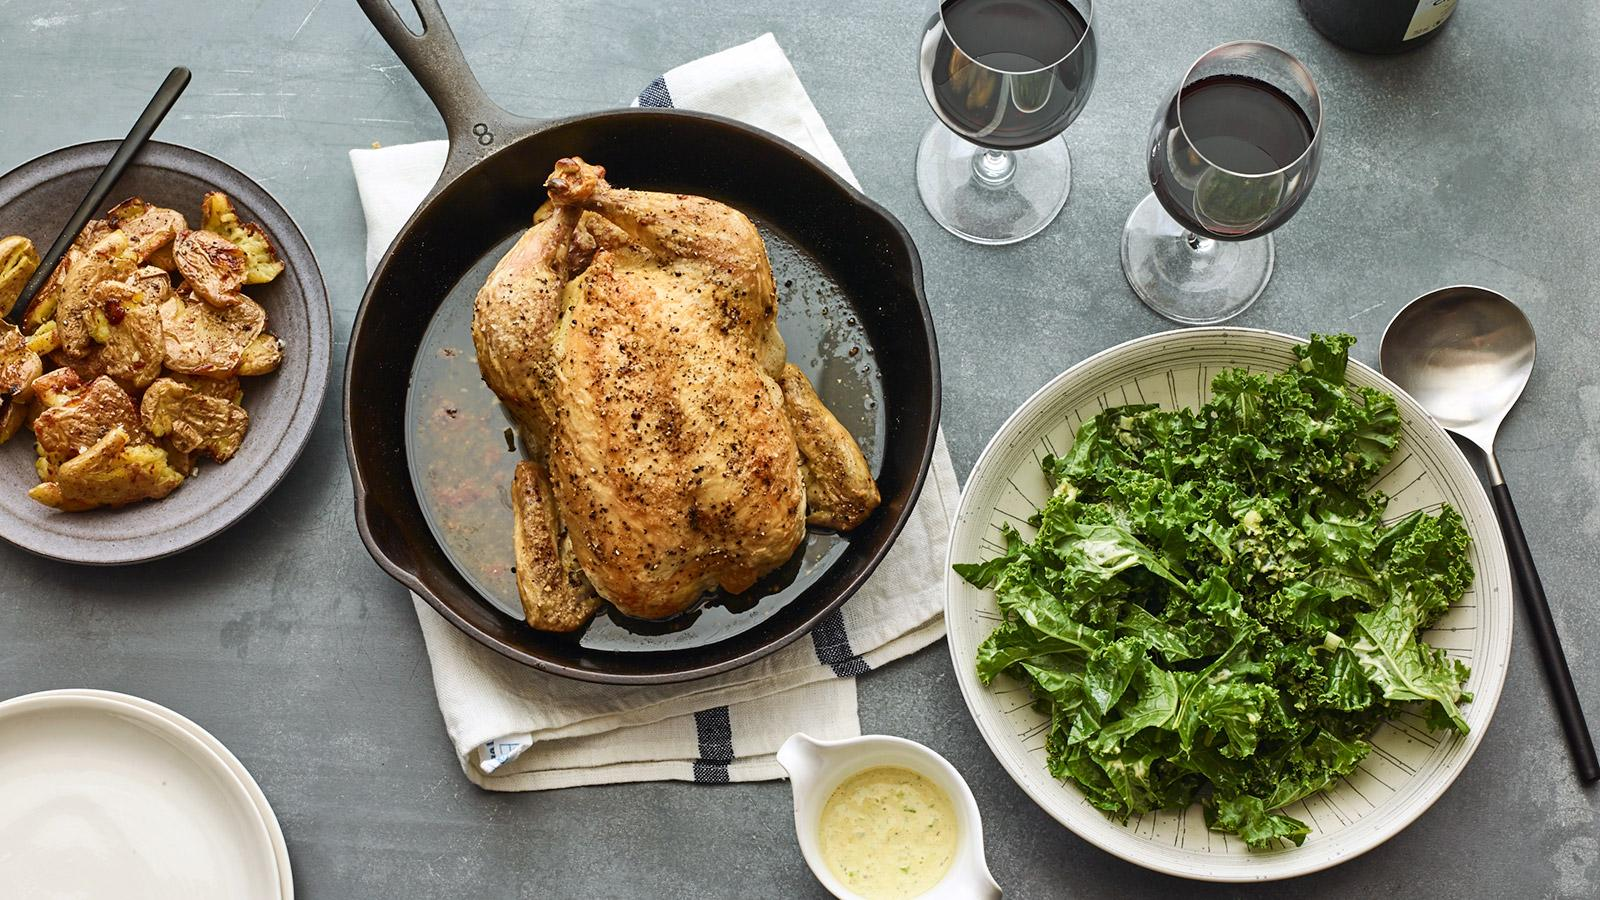 Perfect Match Recipe: Roasted Whole Chicken